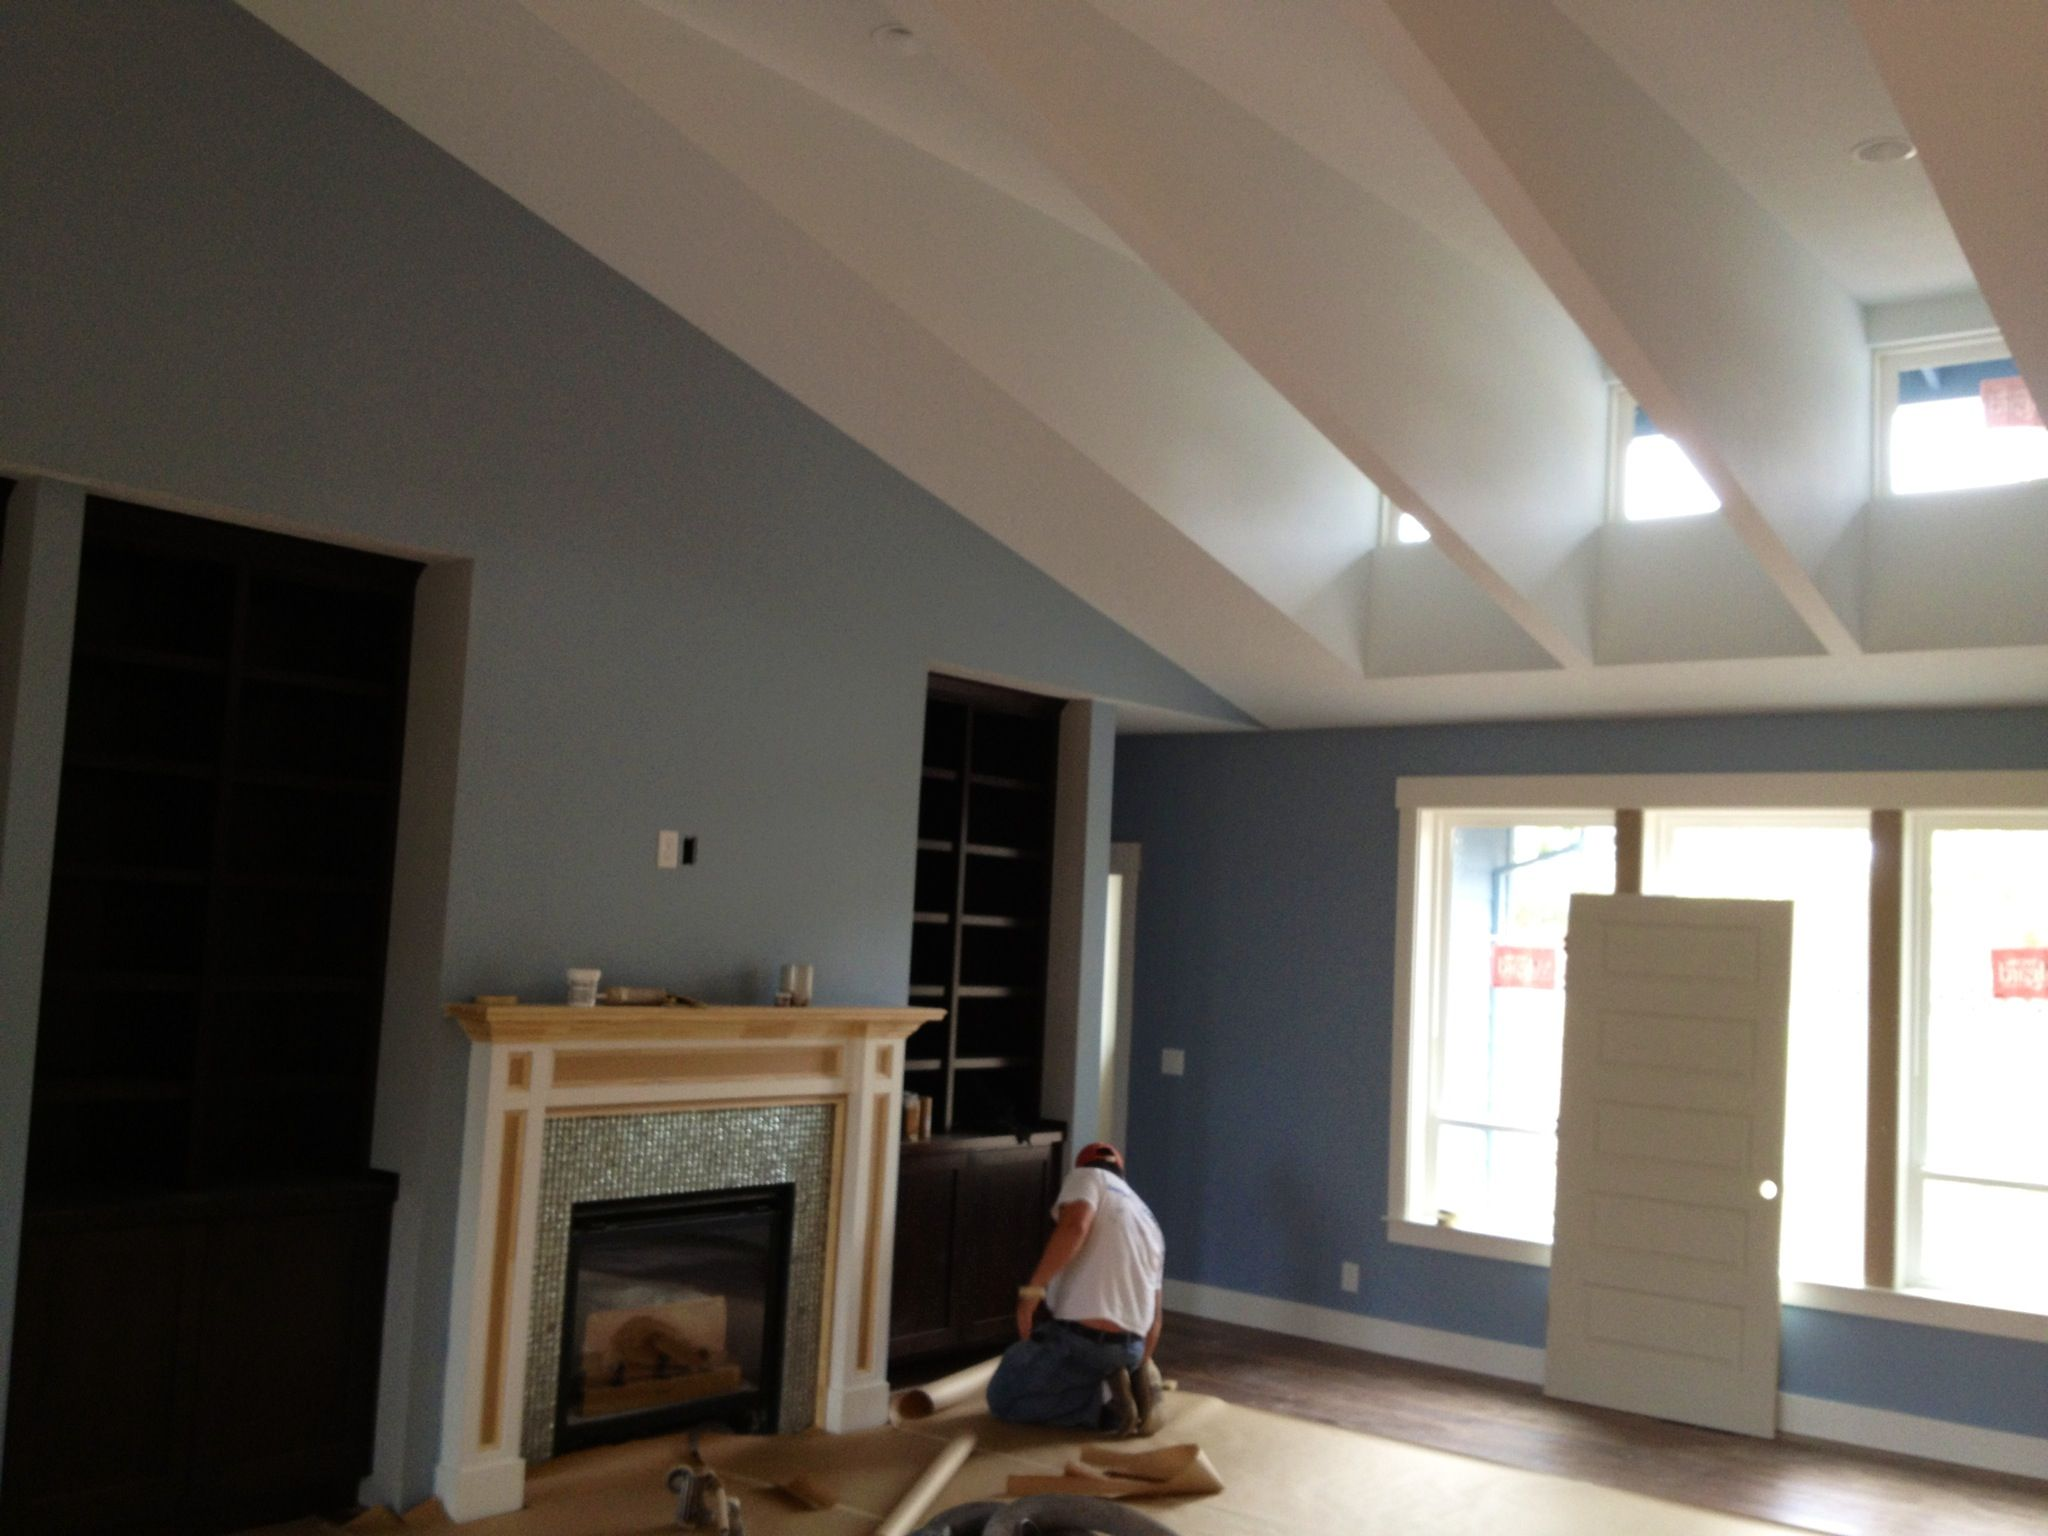 Transom window application a great way to get light into a space